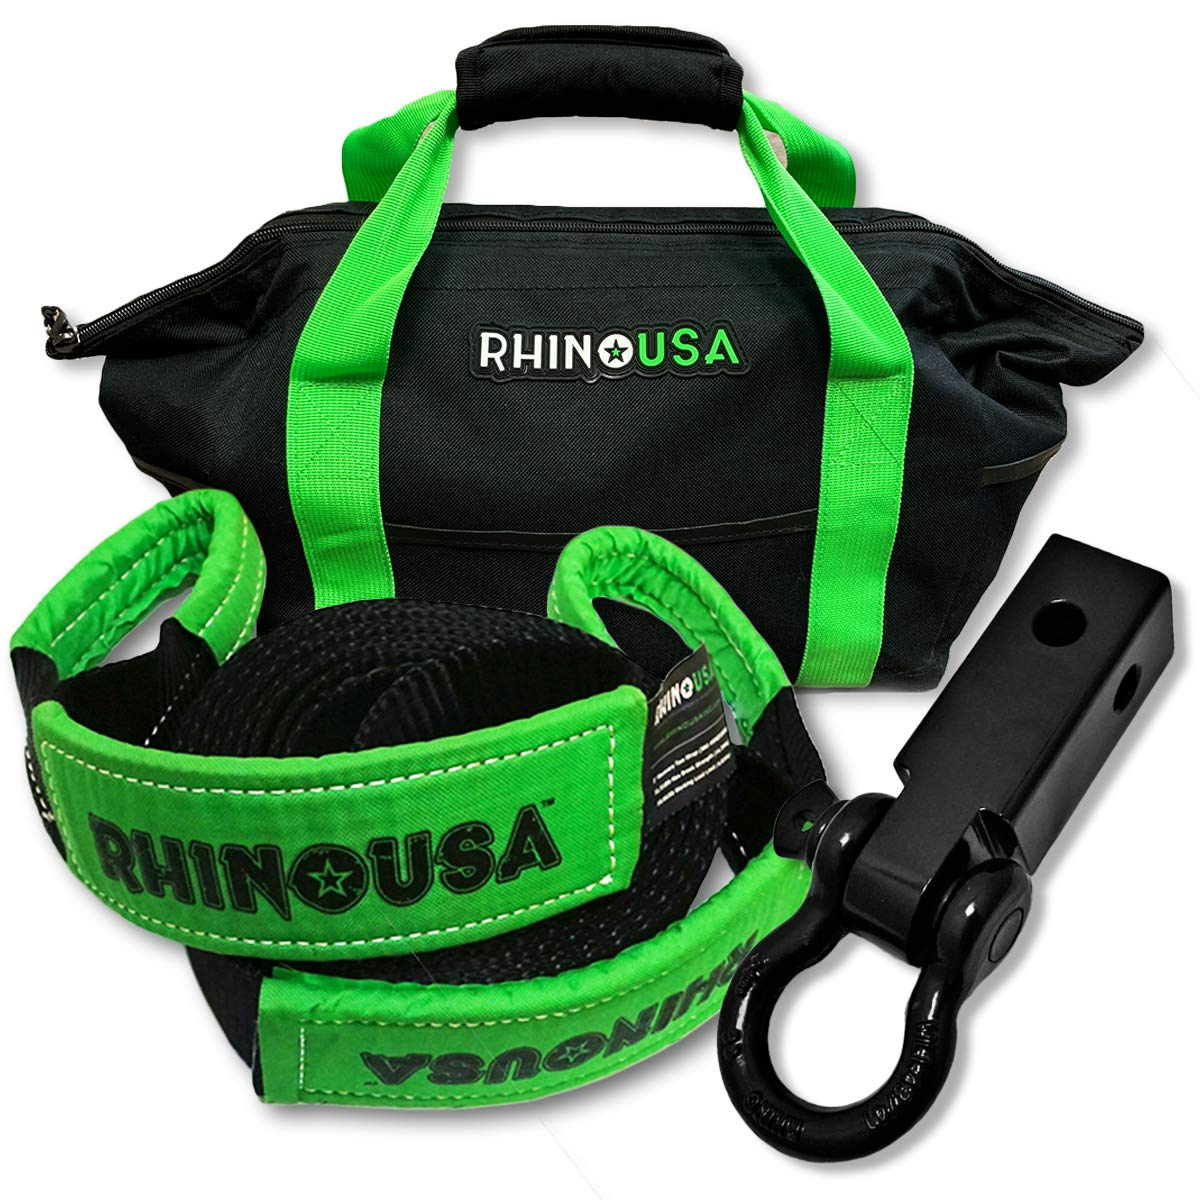 RHINO USA COMBO Recovery Tow Strap (30ft) & Shackle Hitch Receiver - Lab Tested 31,518lb Break Strength - Heavy Duty Storage Bag Included - Triple Reinforced Loop End to Ensure Peace of Mind by Rhino USA